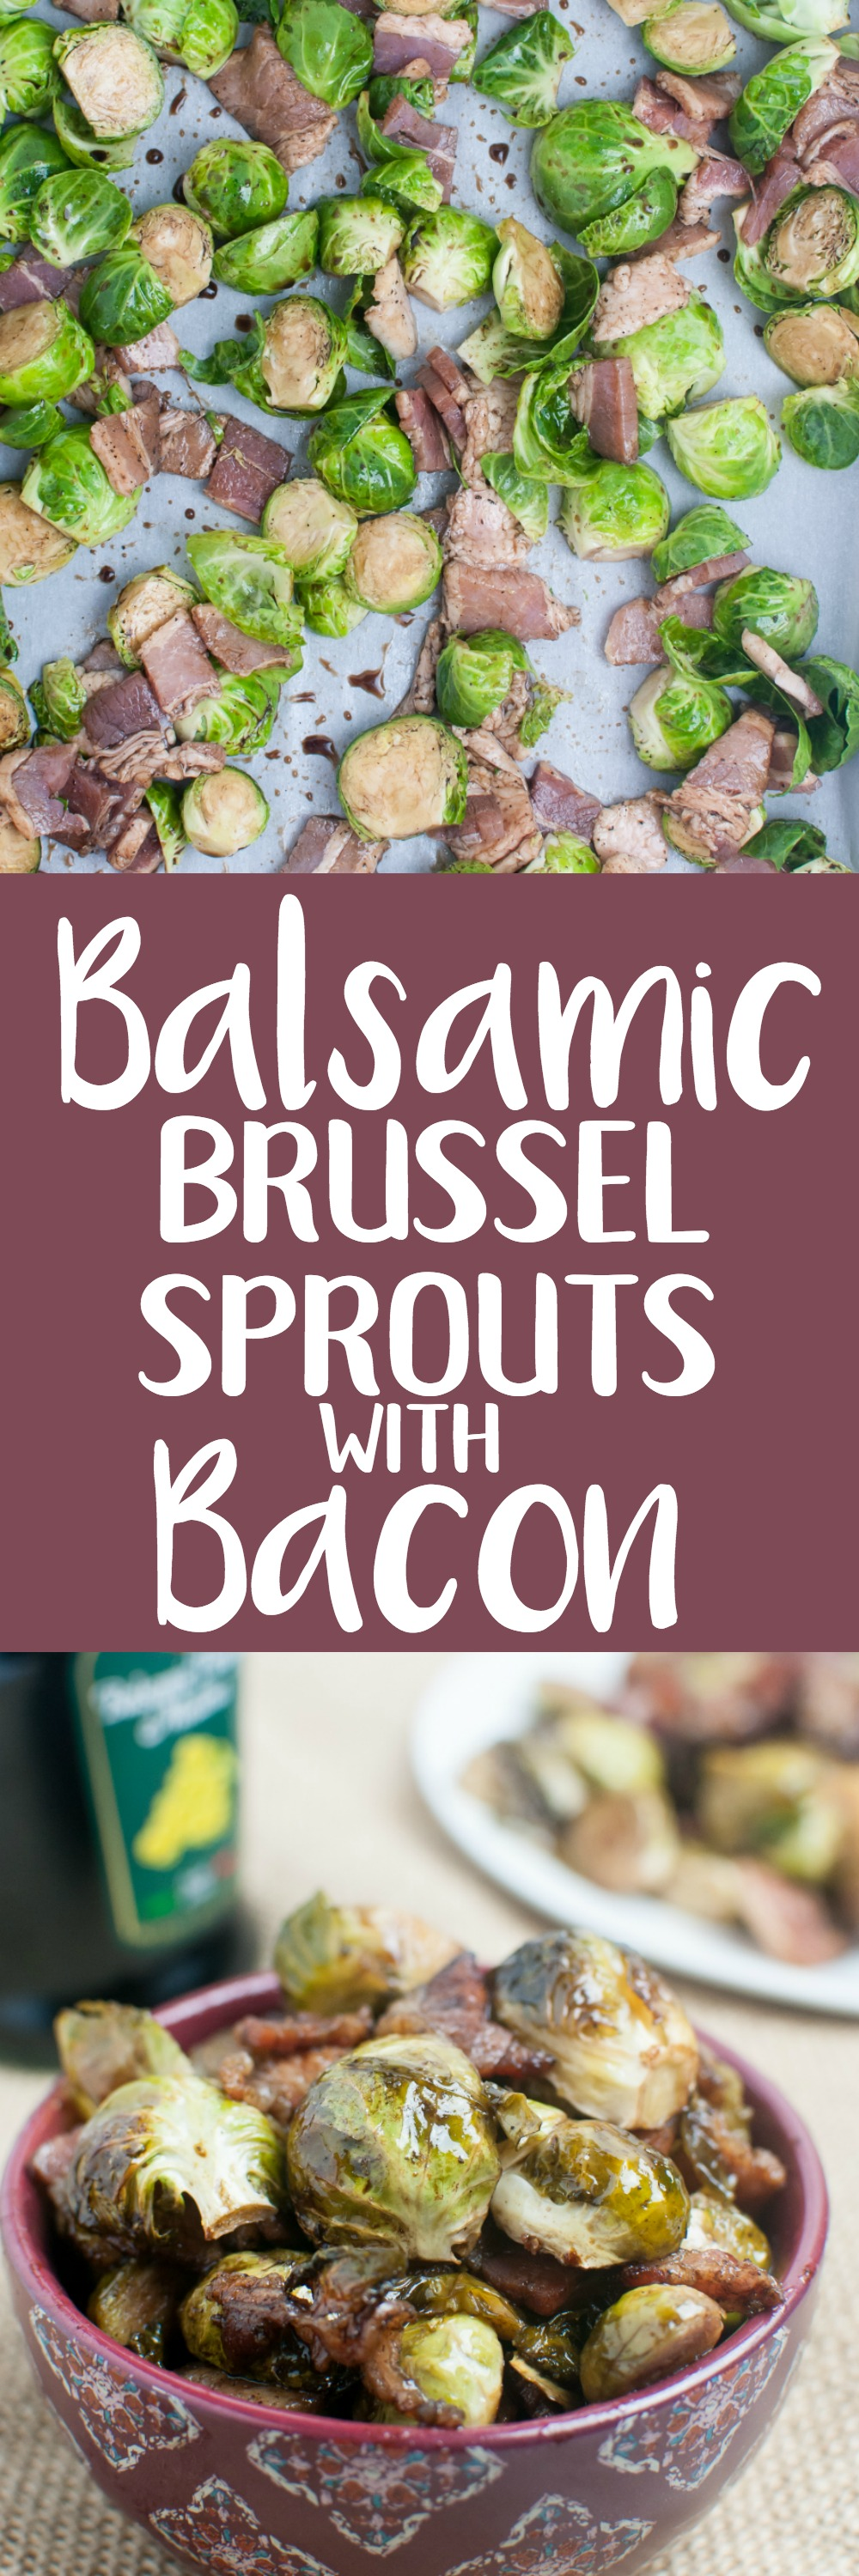 balsamicbrusselswithbacon